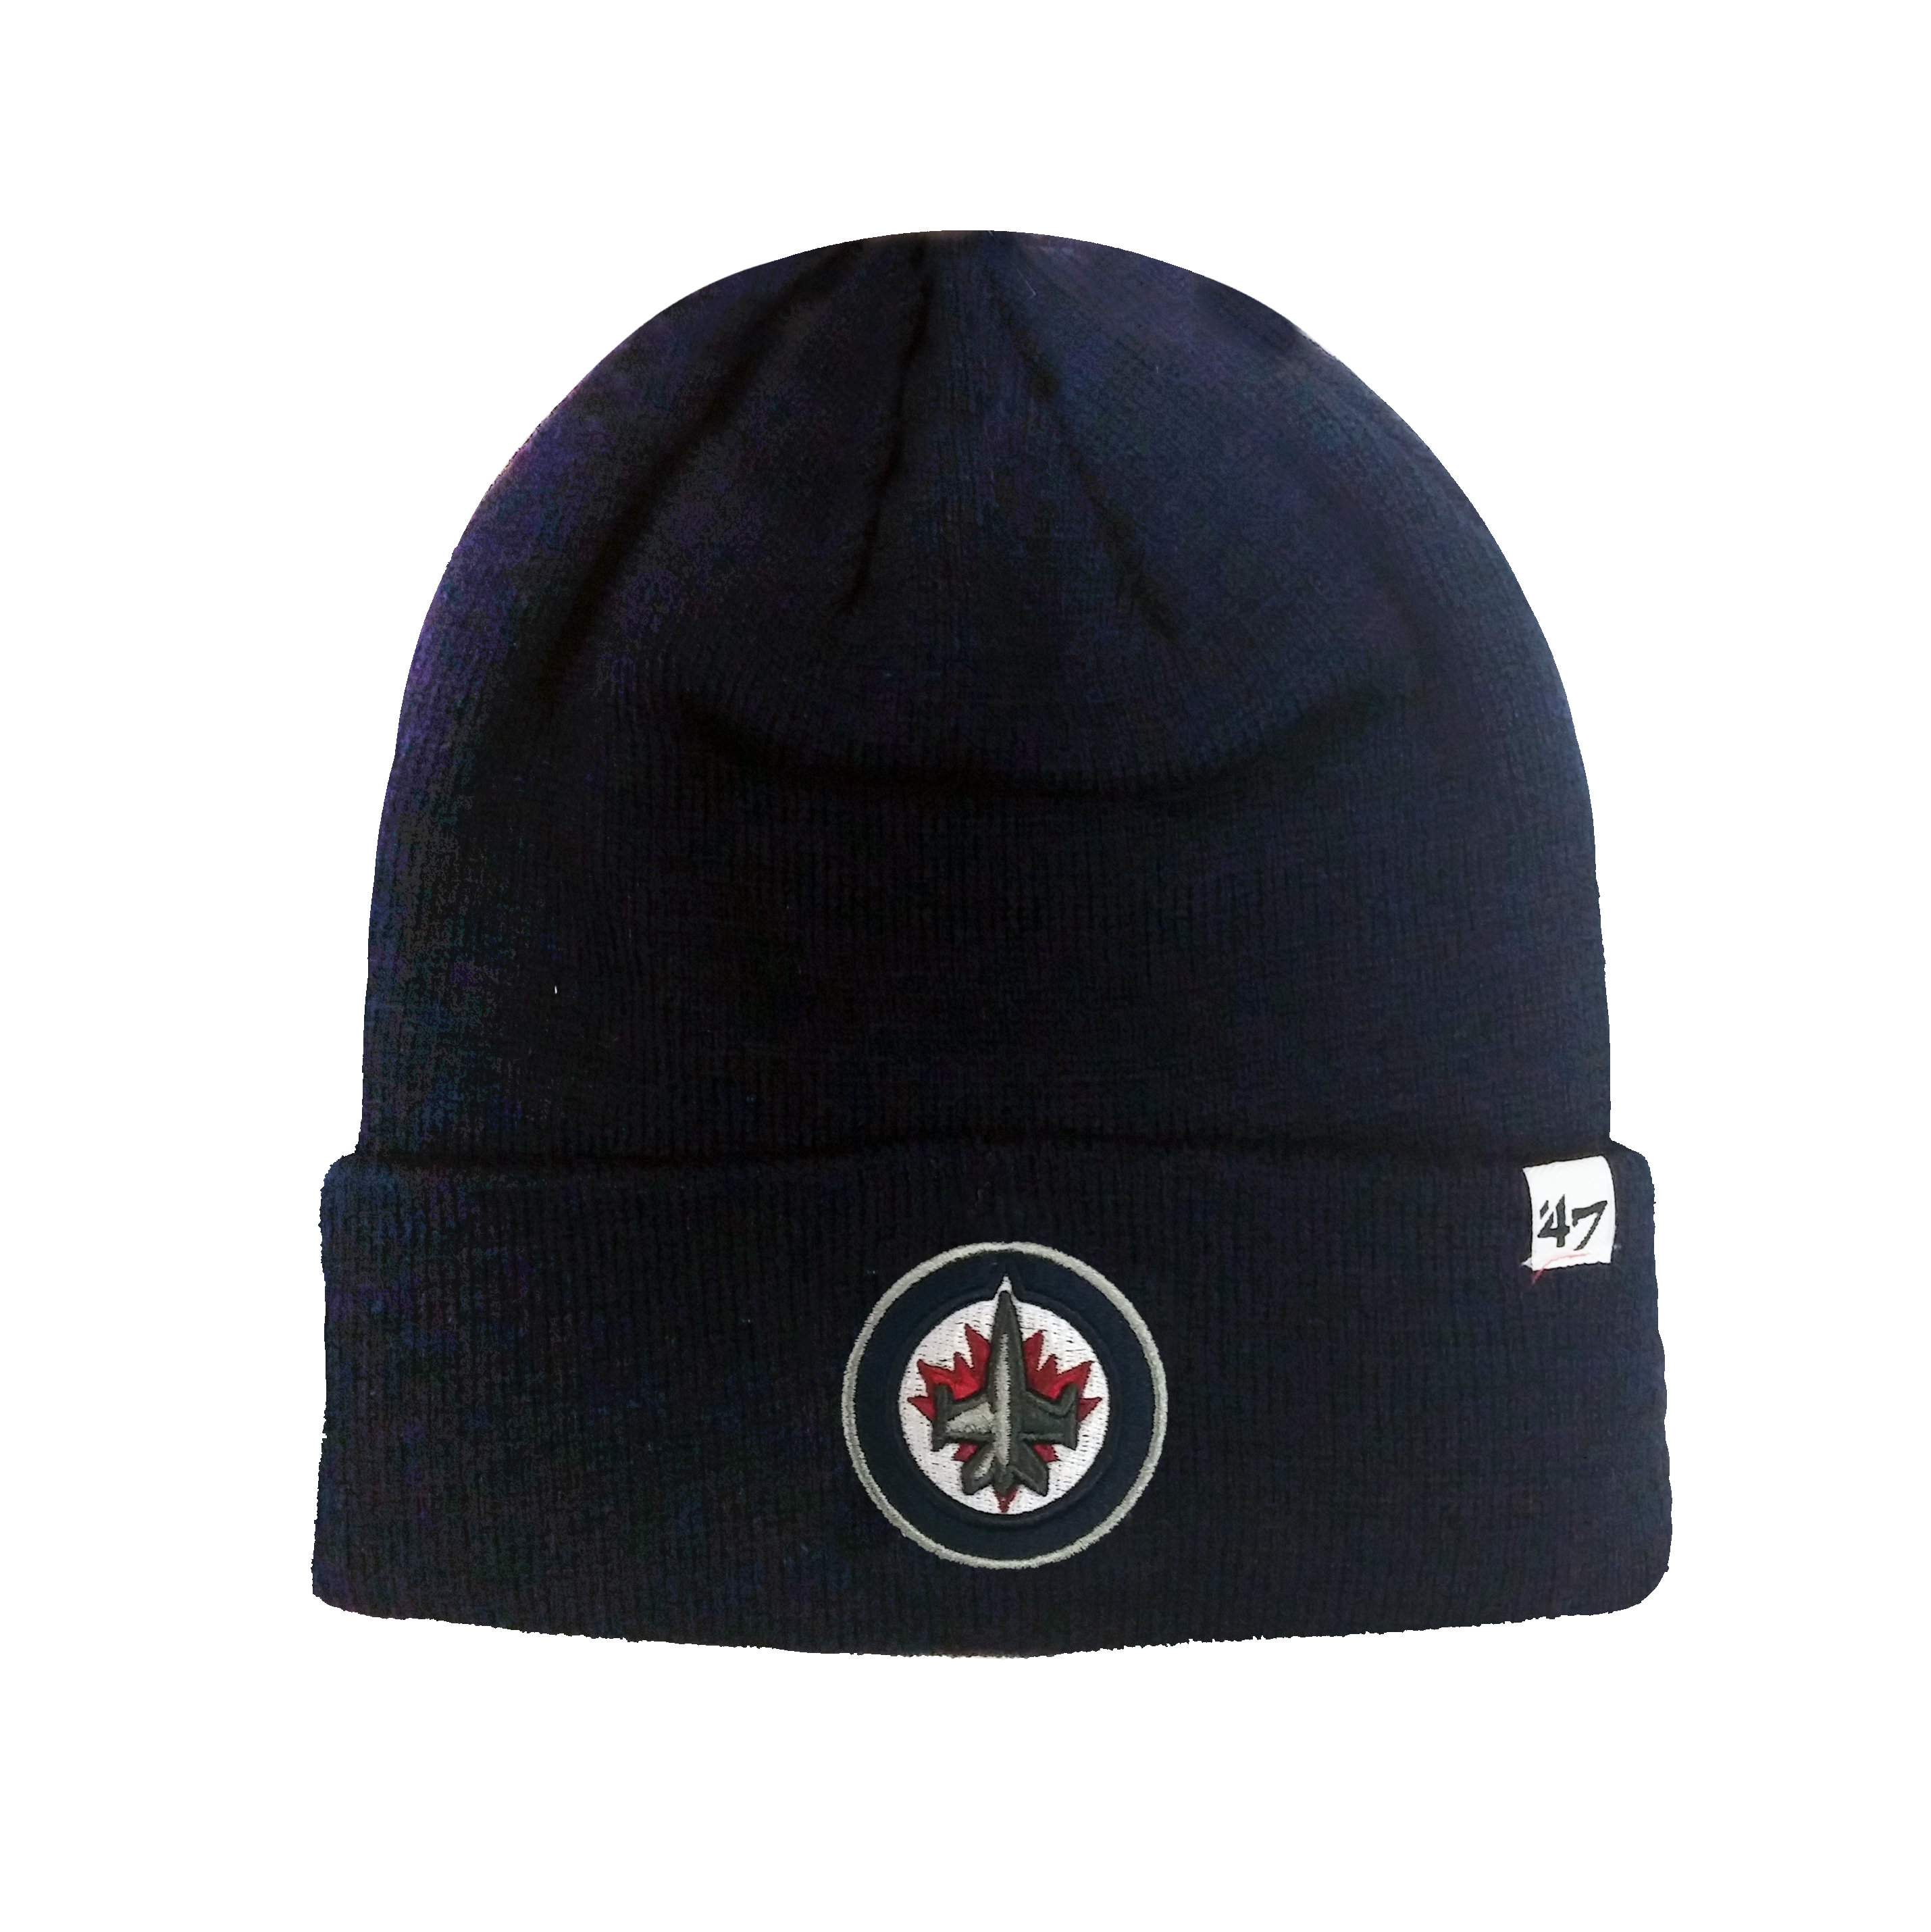 a059b43f36d Winnipeg Jets NHL Raised Cuff Knit Beanie - image 1 of 1 zoomed image